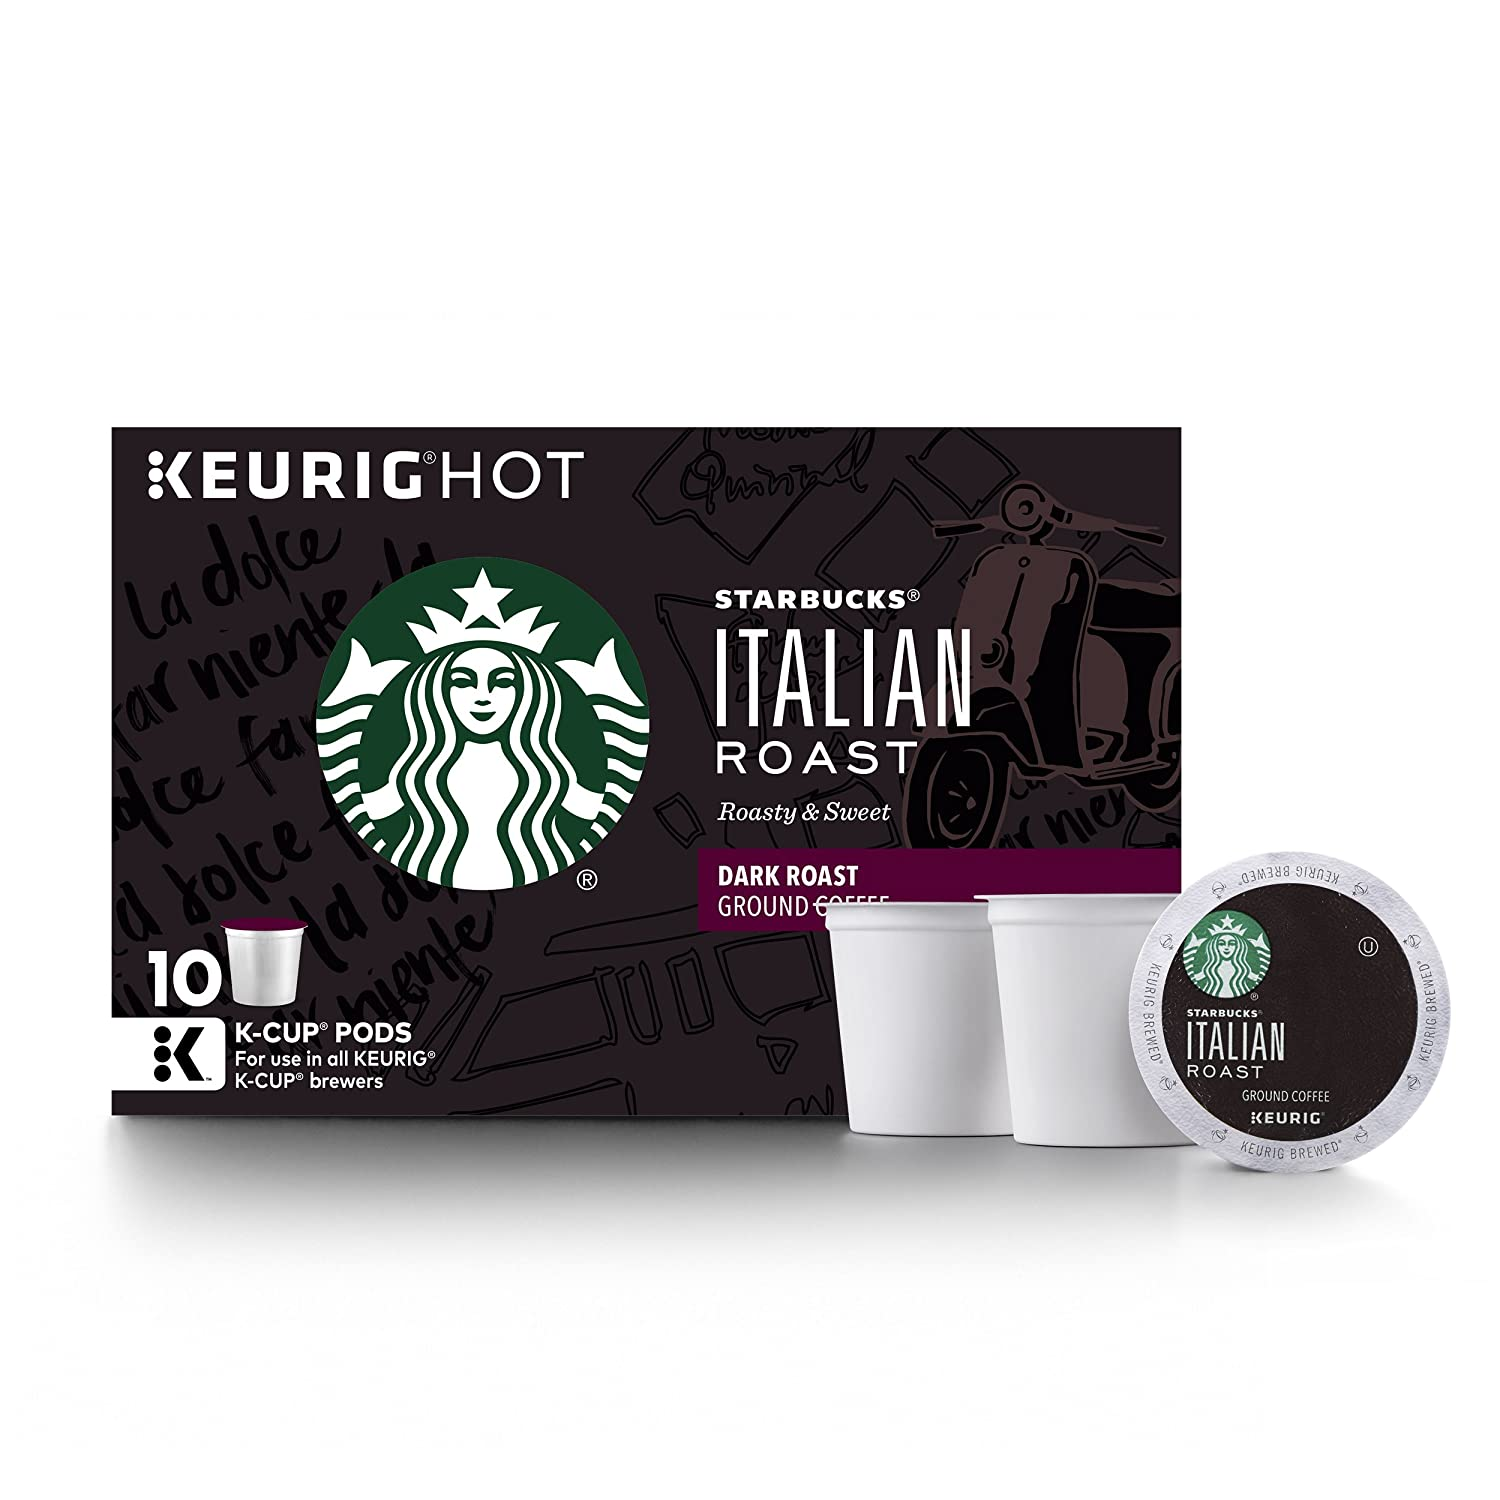 Starbucks Italian Roast Dark Roast Single Cup Coffee for Keurig Brewers, 6 Boxes of 10 (60 Total K-Cup pods)